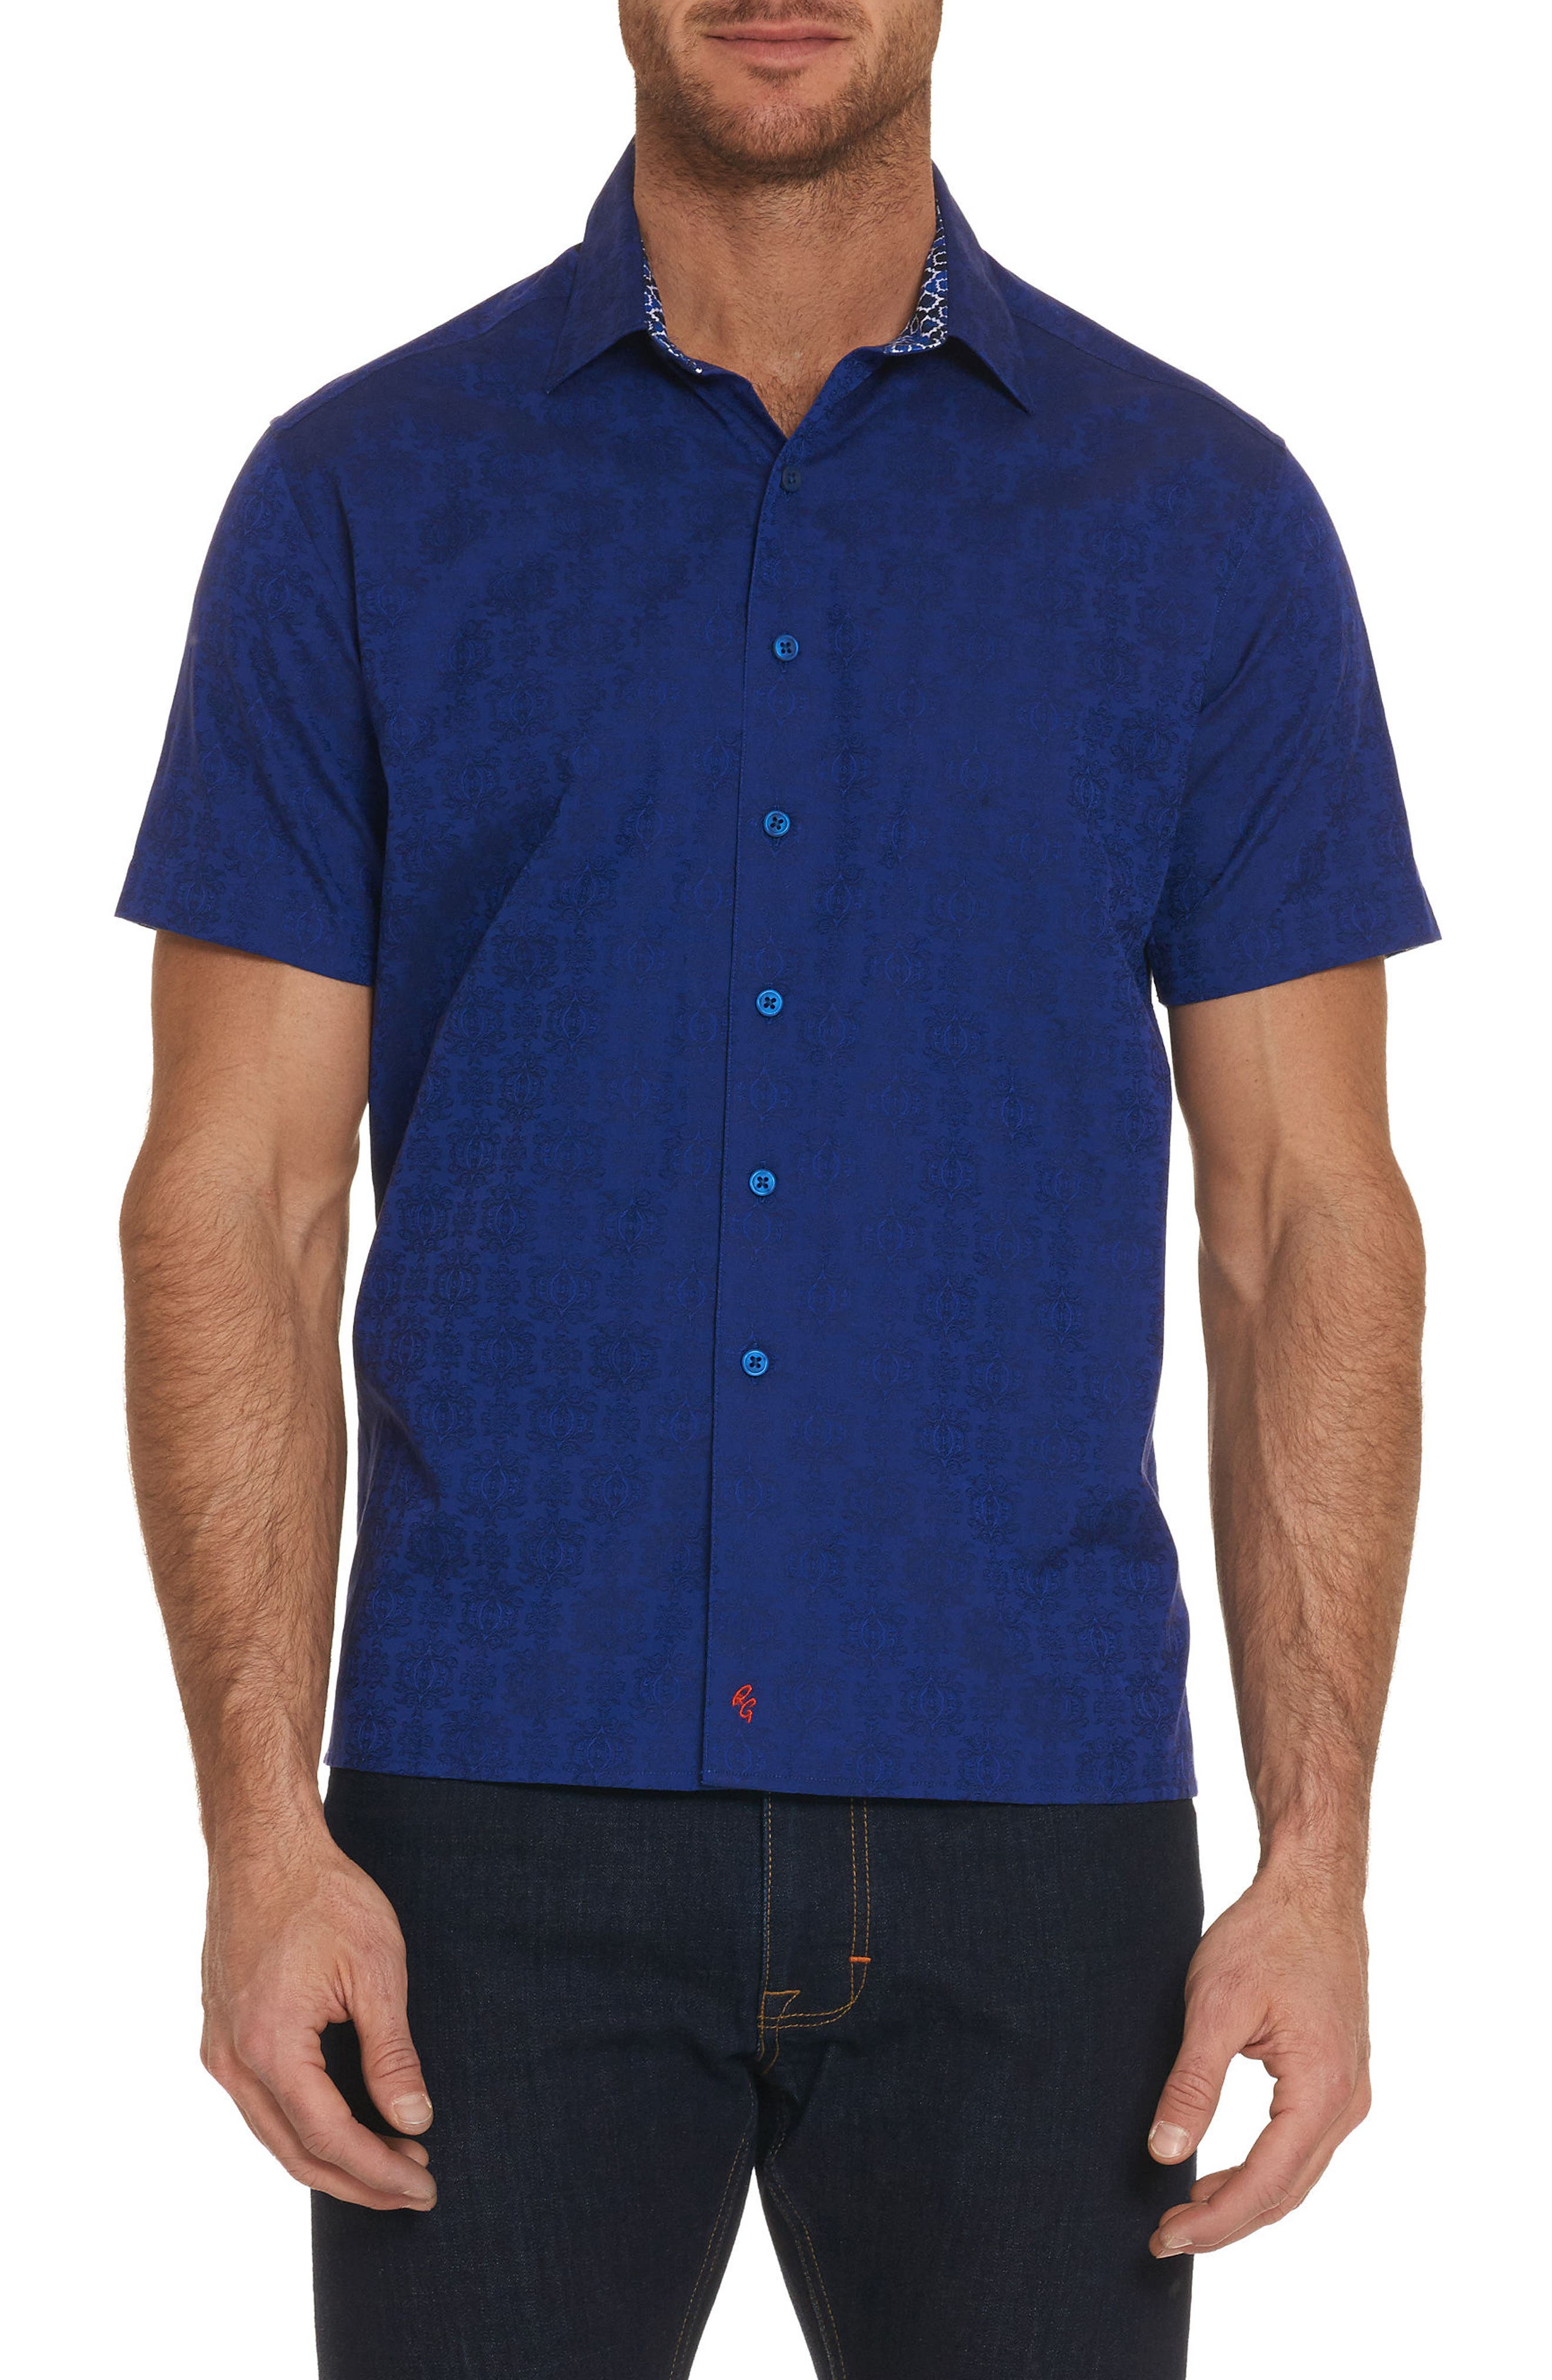 Cullen Squared Regular Fit Short Sleeve Sport Shirt,                             Main thumbnail 1, color,                             Navy